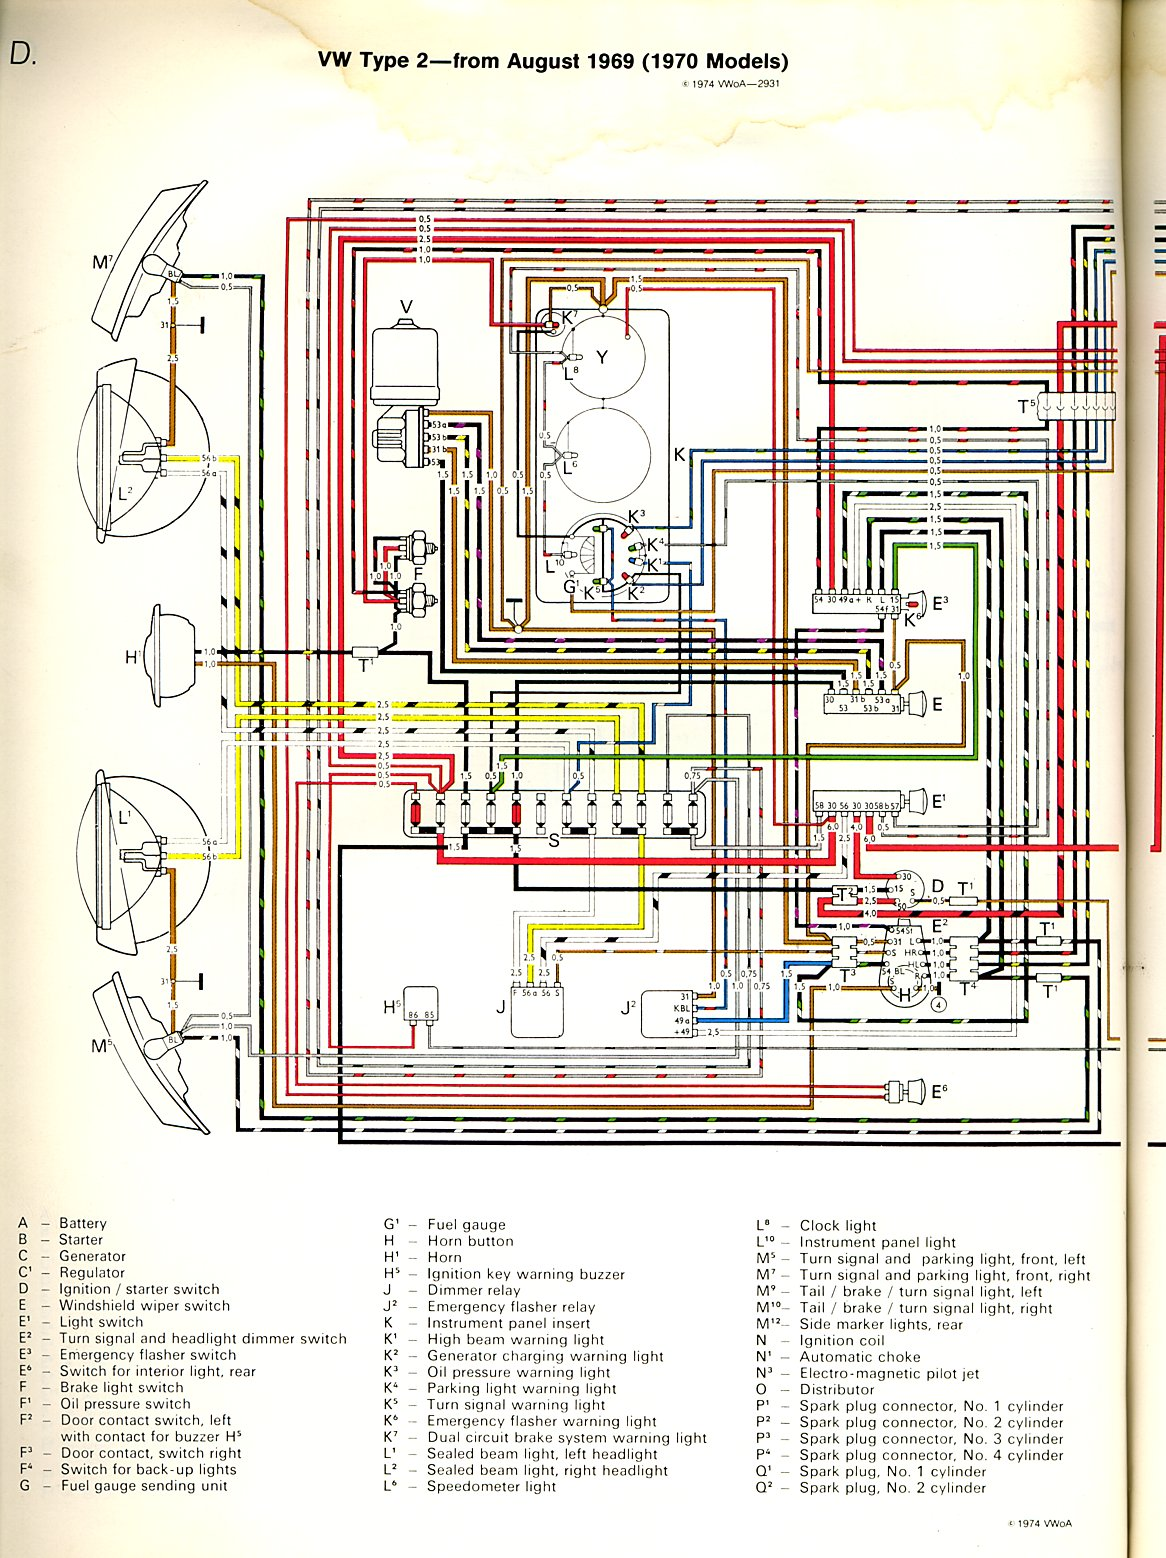 68 Buick Fuse Diagram Wiring Schematic Start Building A Honda Fit Box Thesamba Com Type 2 Diagrams Rh 2013 For Rv